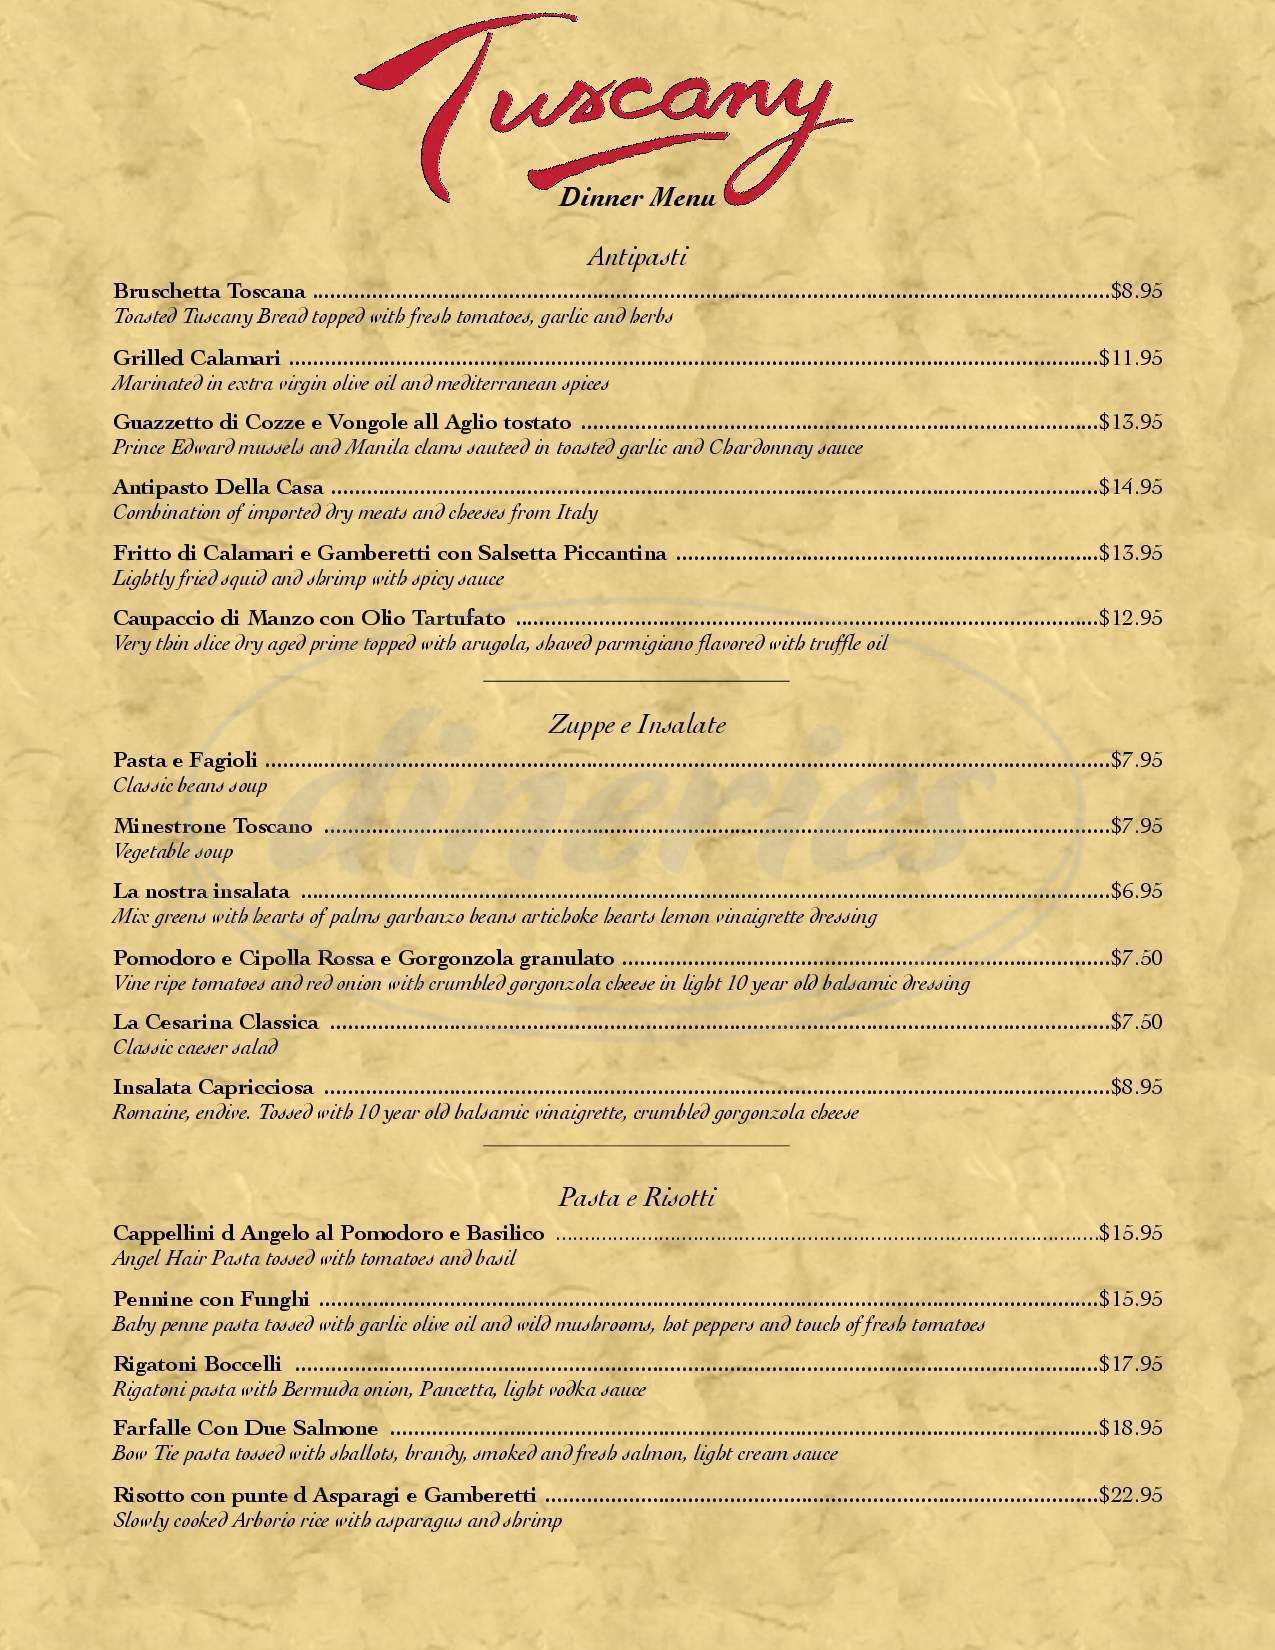 menu for Tuscany Ristorante